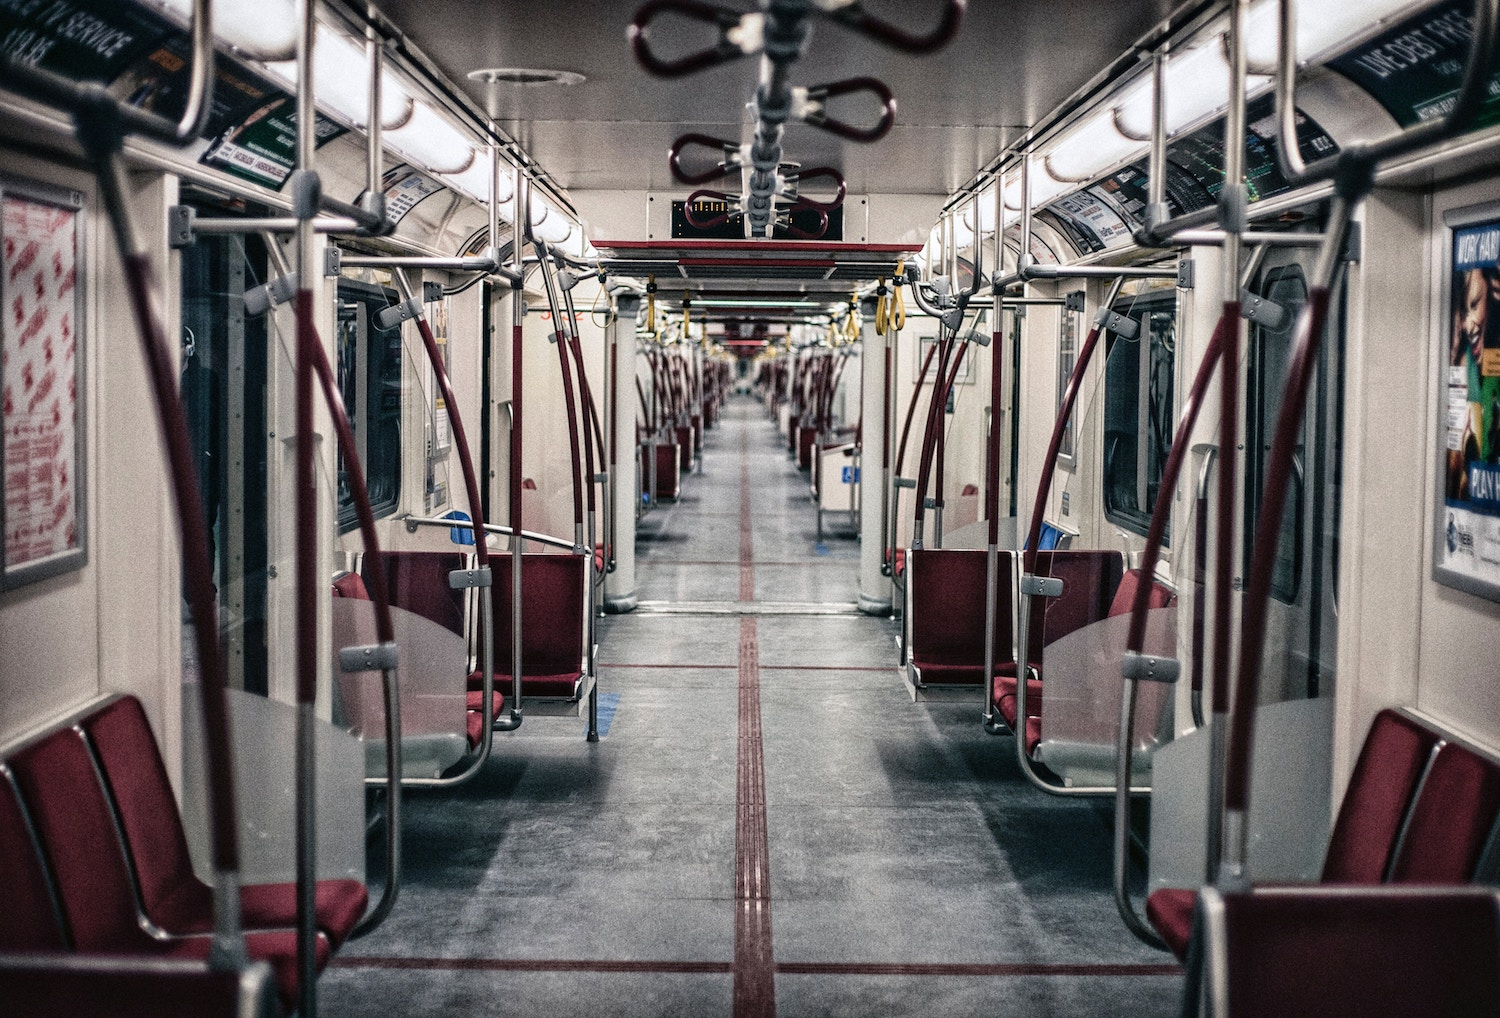 empty seats on a public train